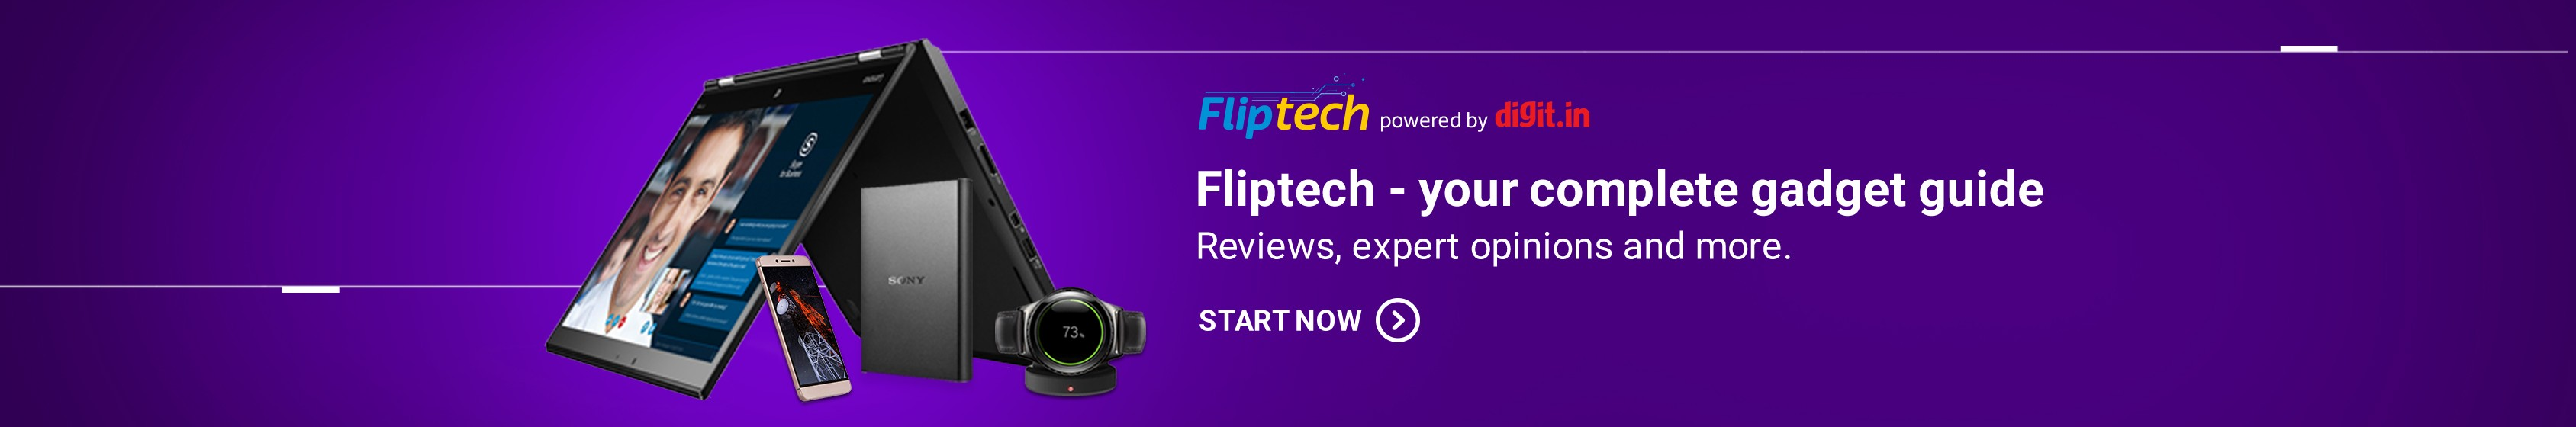 Flipkart Fliptech Hobby Hub - New technology launched by Flipkart to provide consumers ease of making shopping decisions.